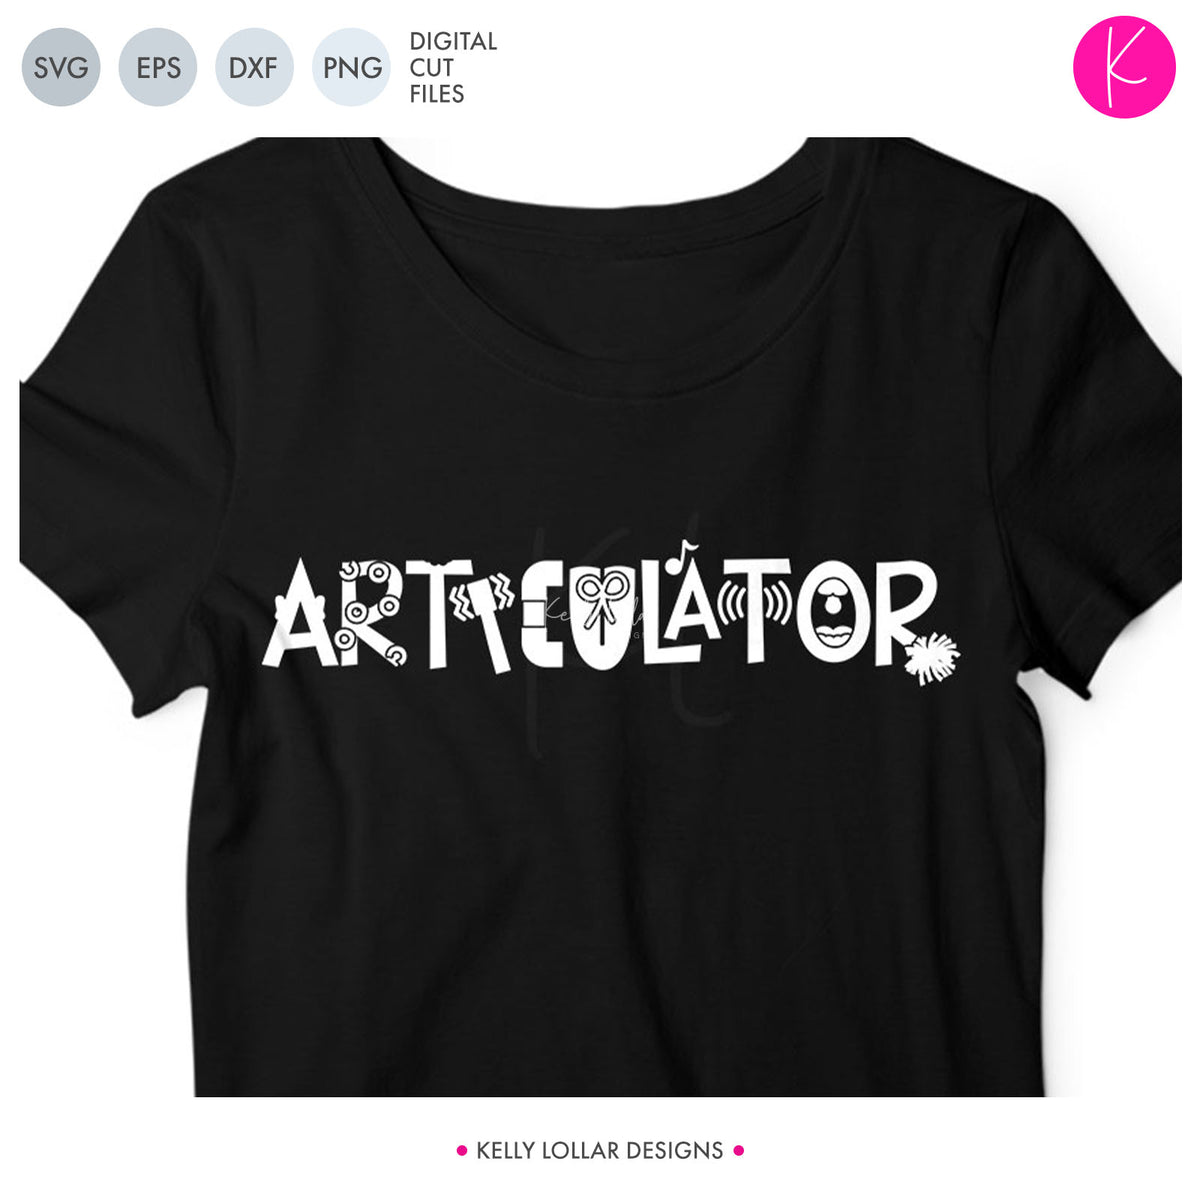 Articulator | SVG DXF EPS PNG Cut Files